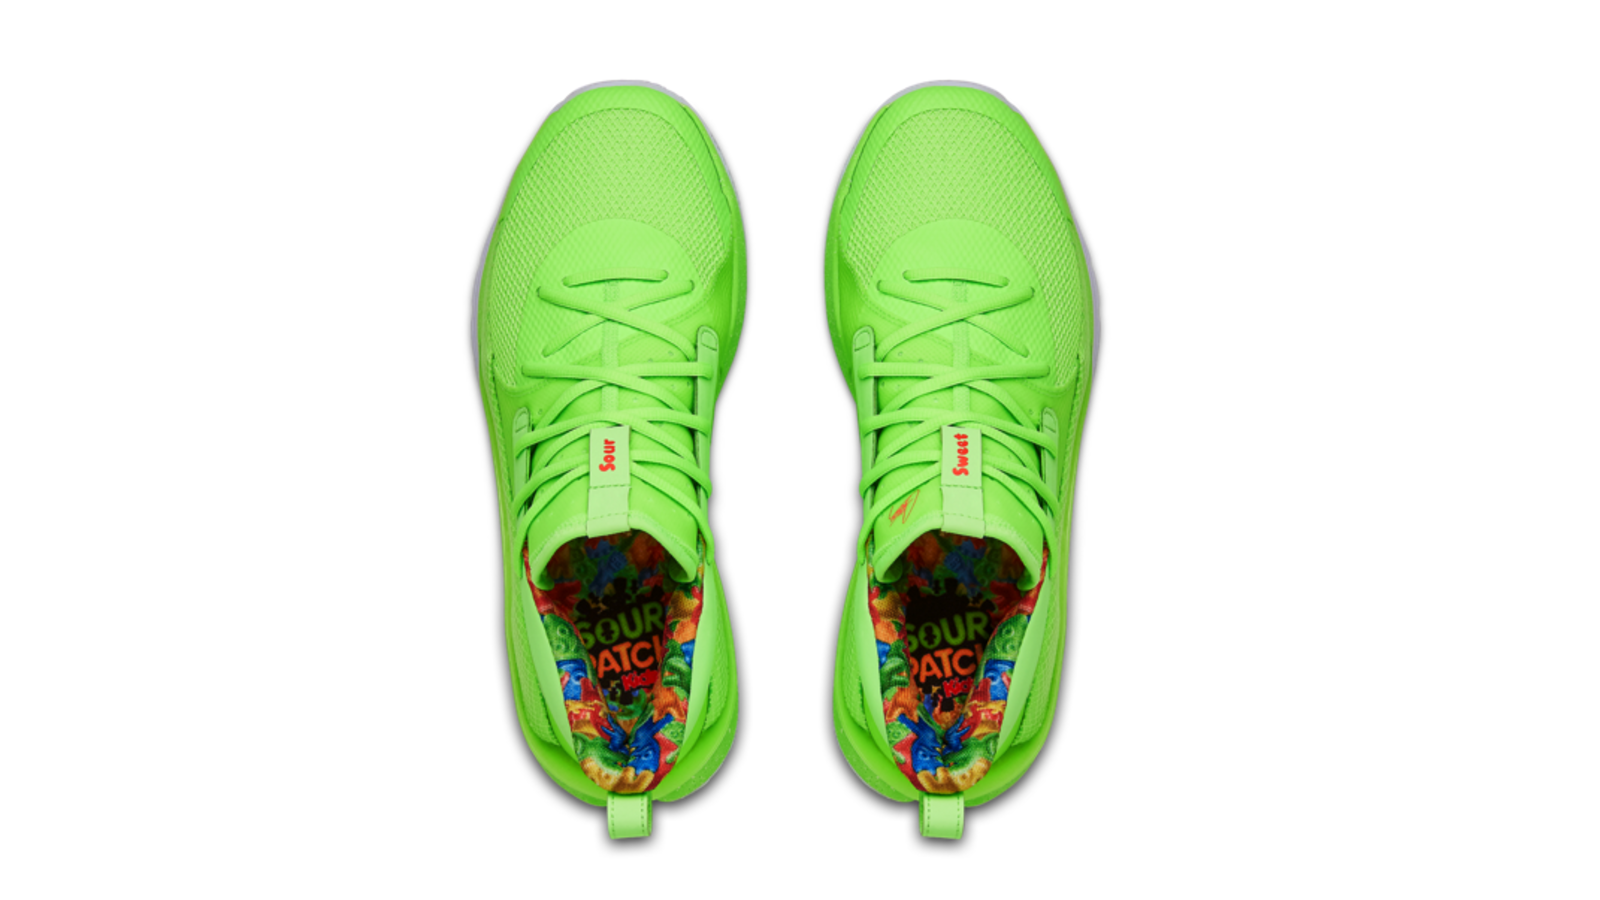 Steph Curry x Sour Patch Kids Announce Under Armour Curry 7 Collection